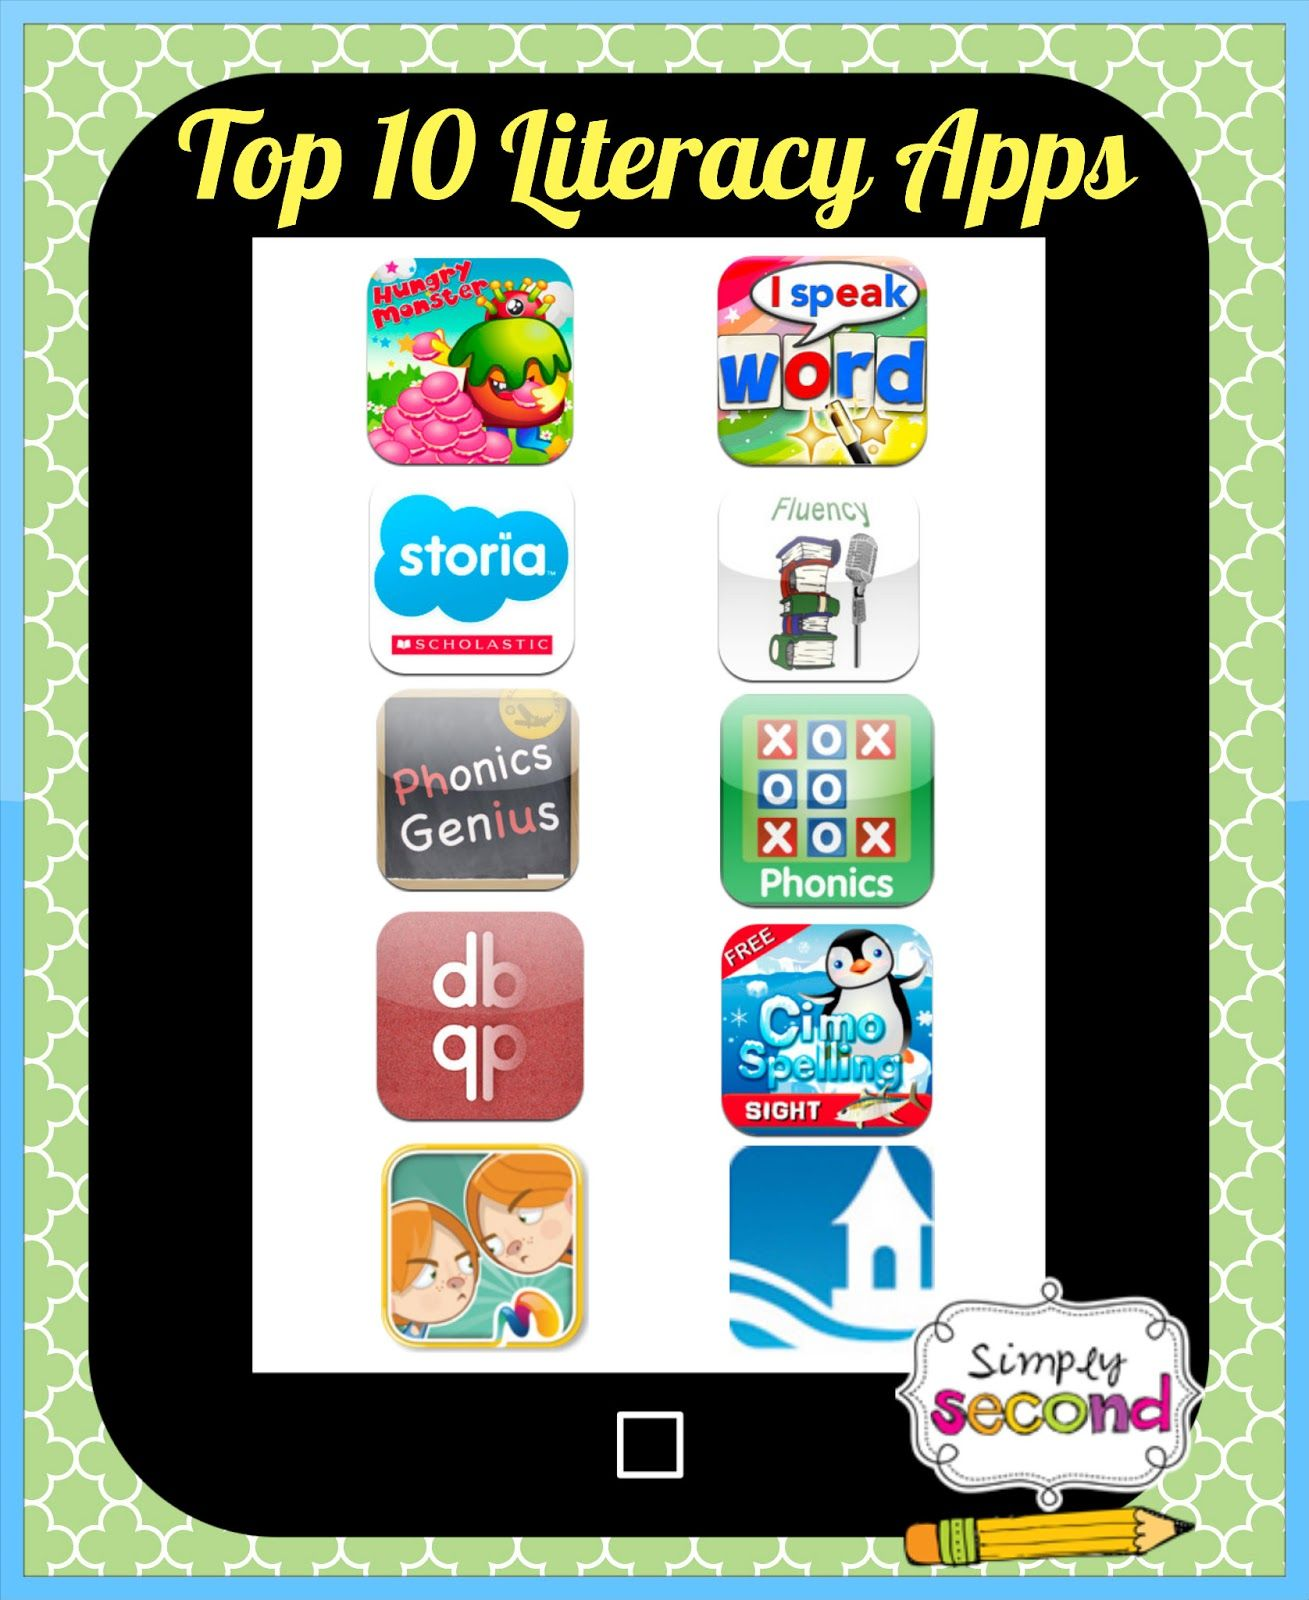 Apps for teacher use to help assess fluency and other